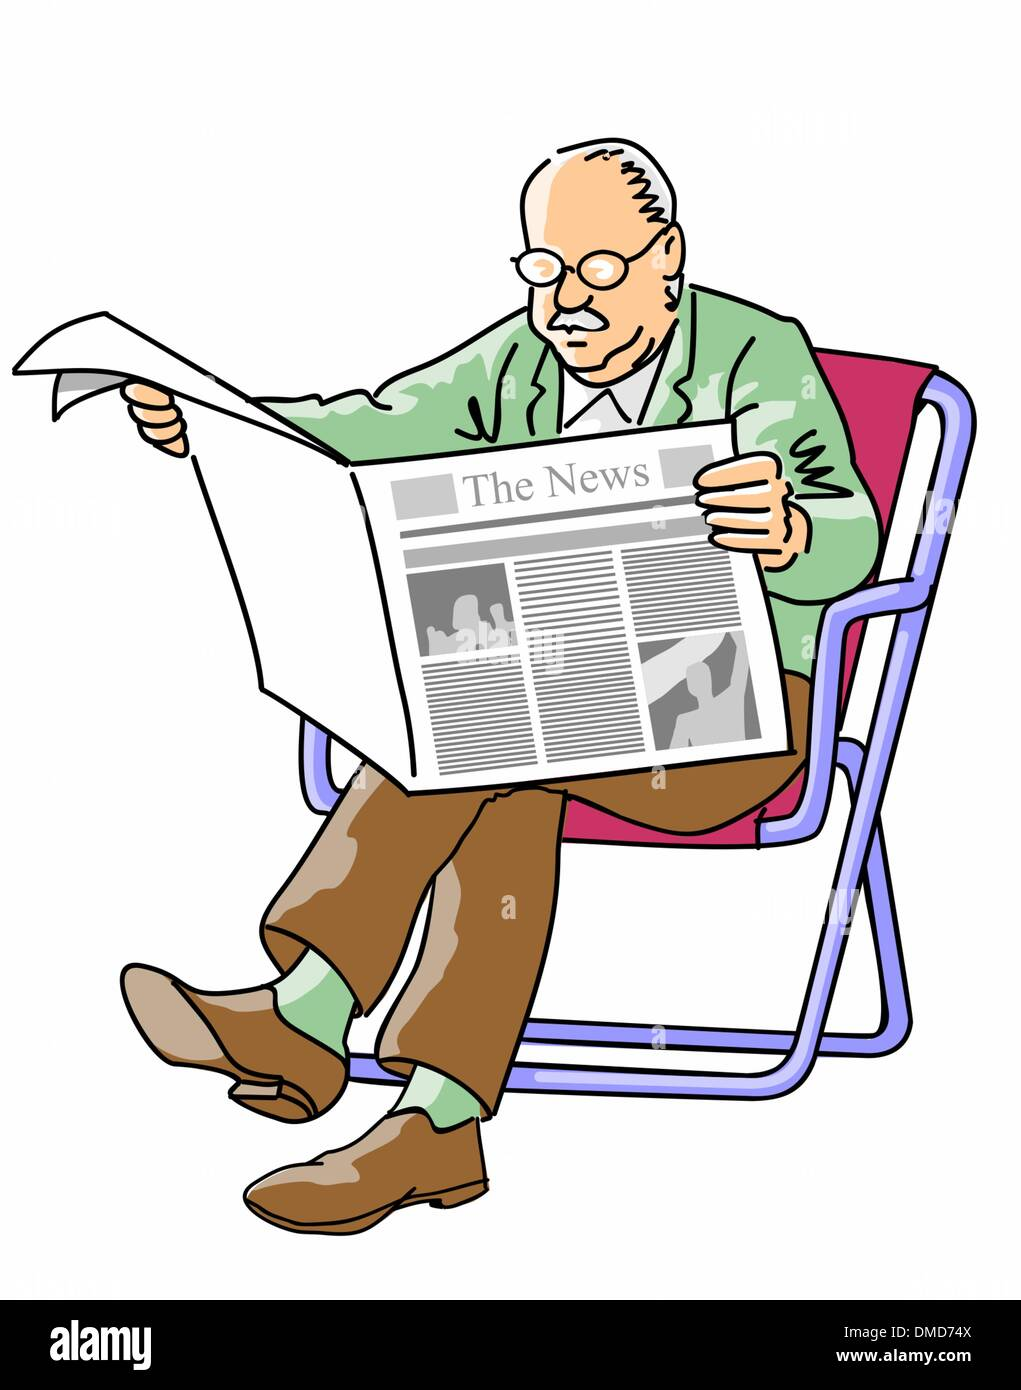 grandfather reading the newspaper stock vector art & illustration